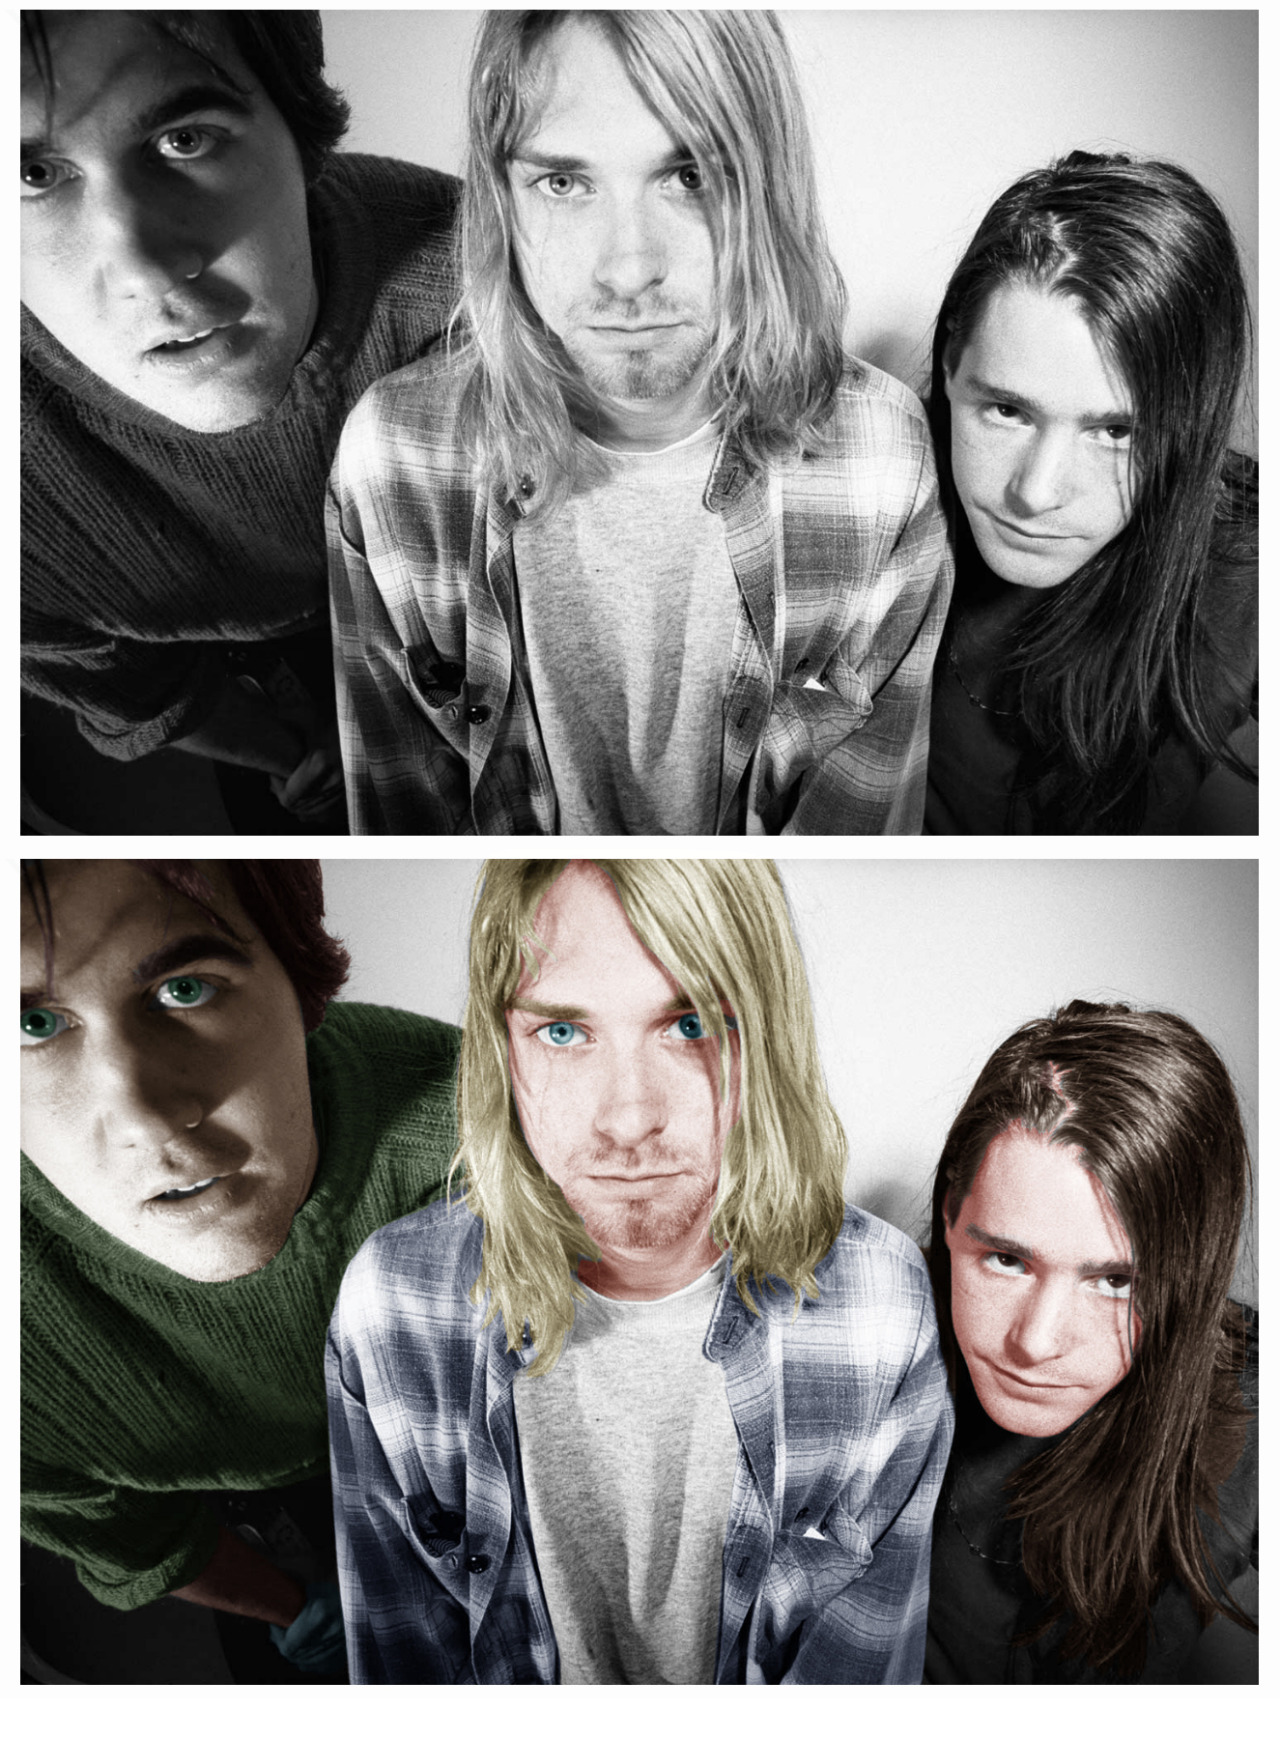 Coloured another Nirvana Photo, kinda rushed, ahh well